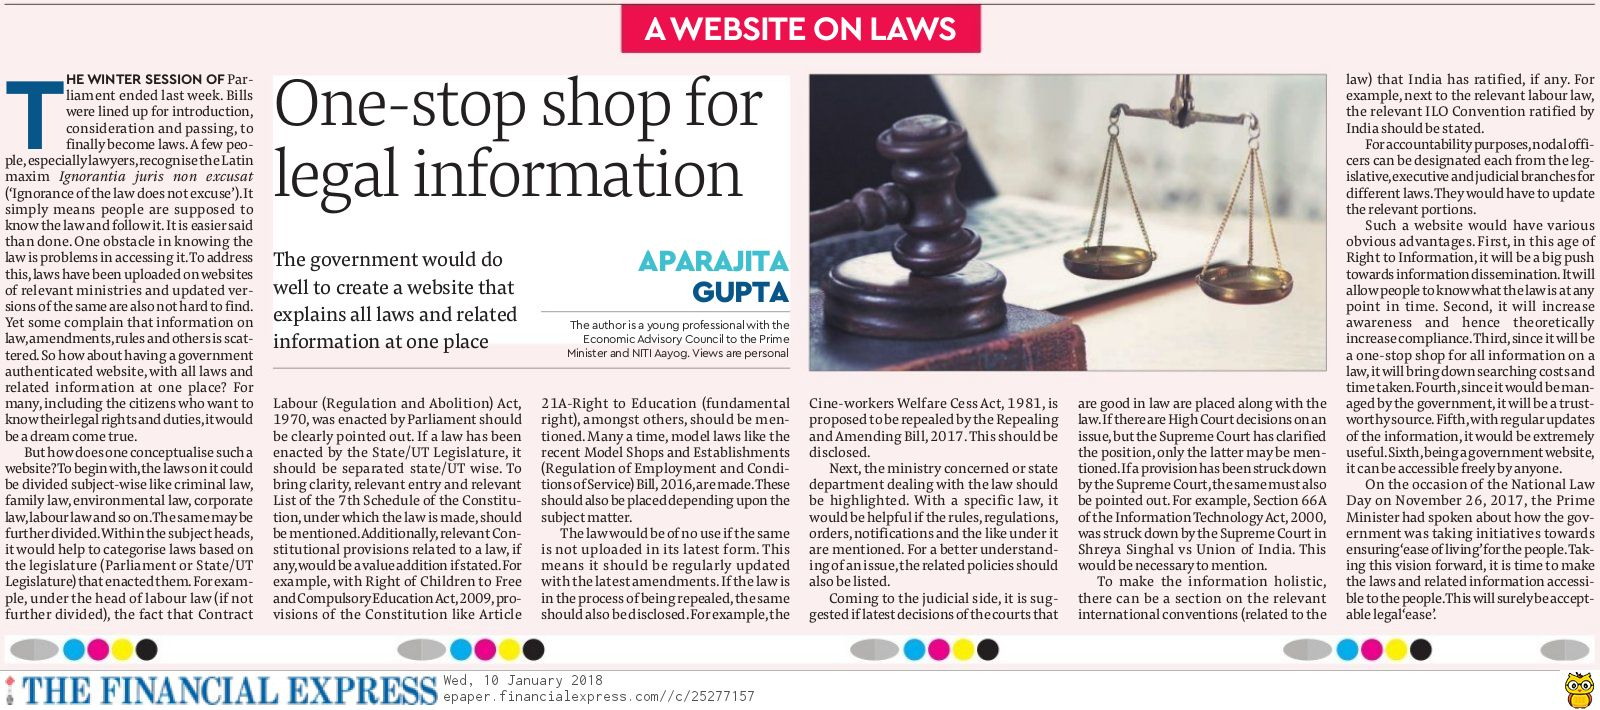 FYI@Librarian: One-stop shop for legal information